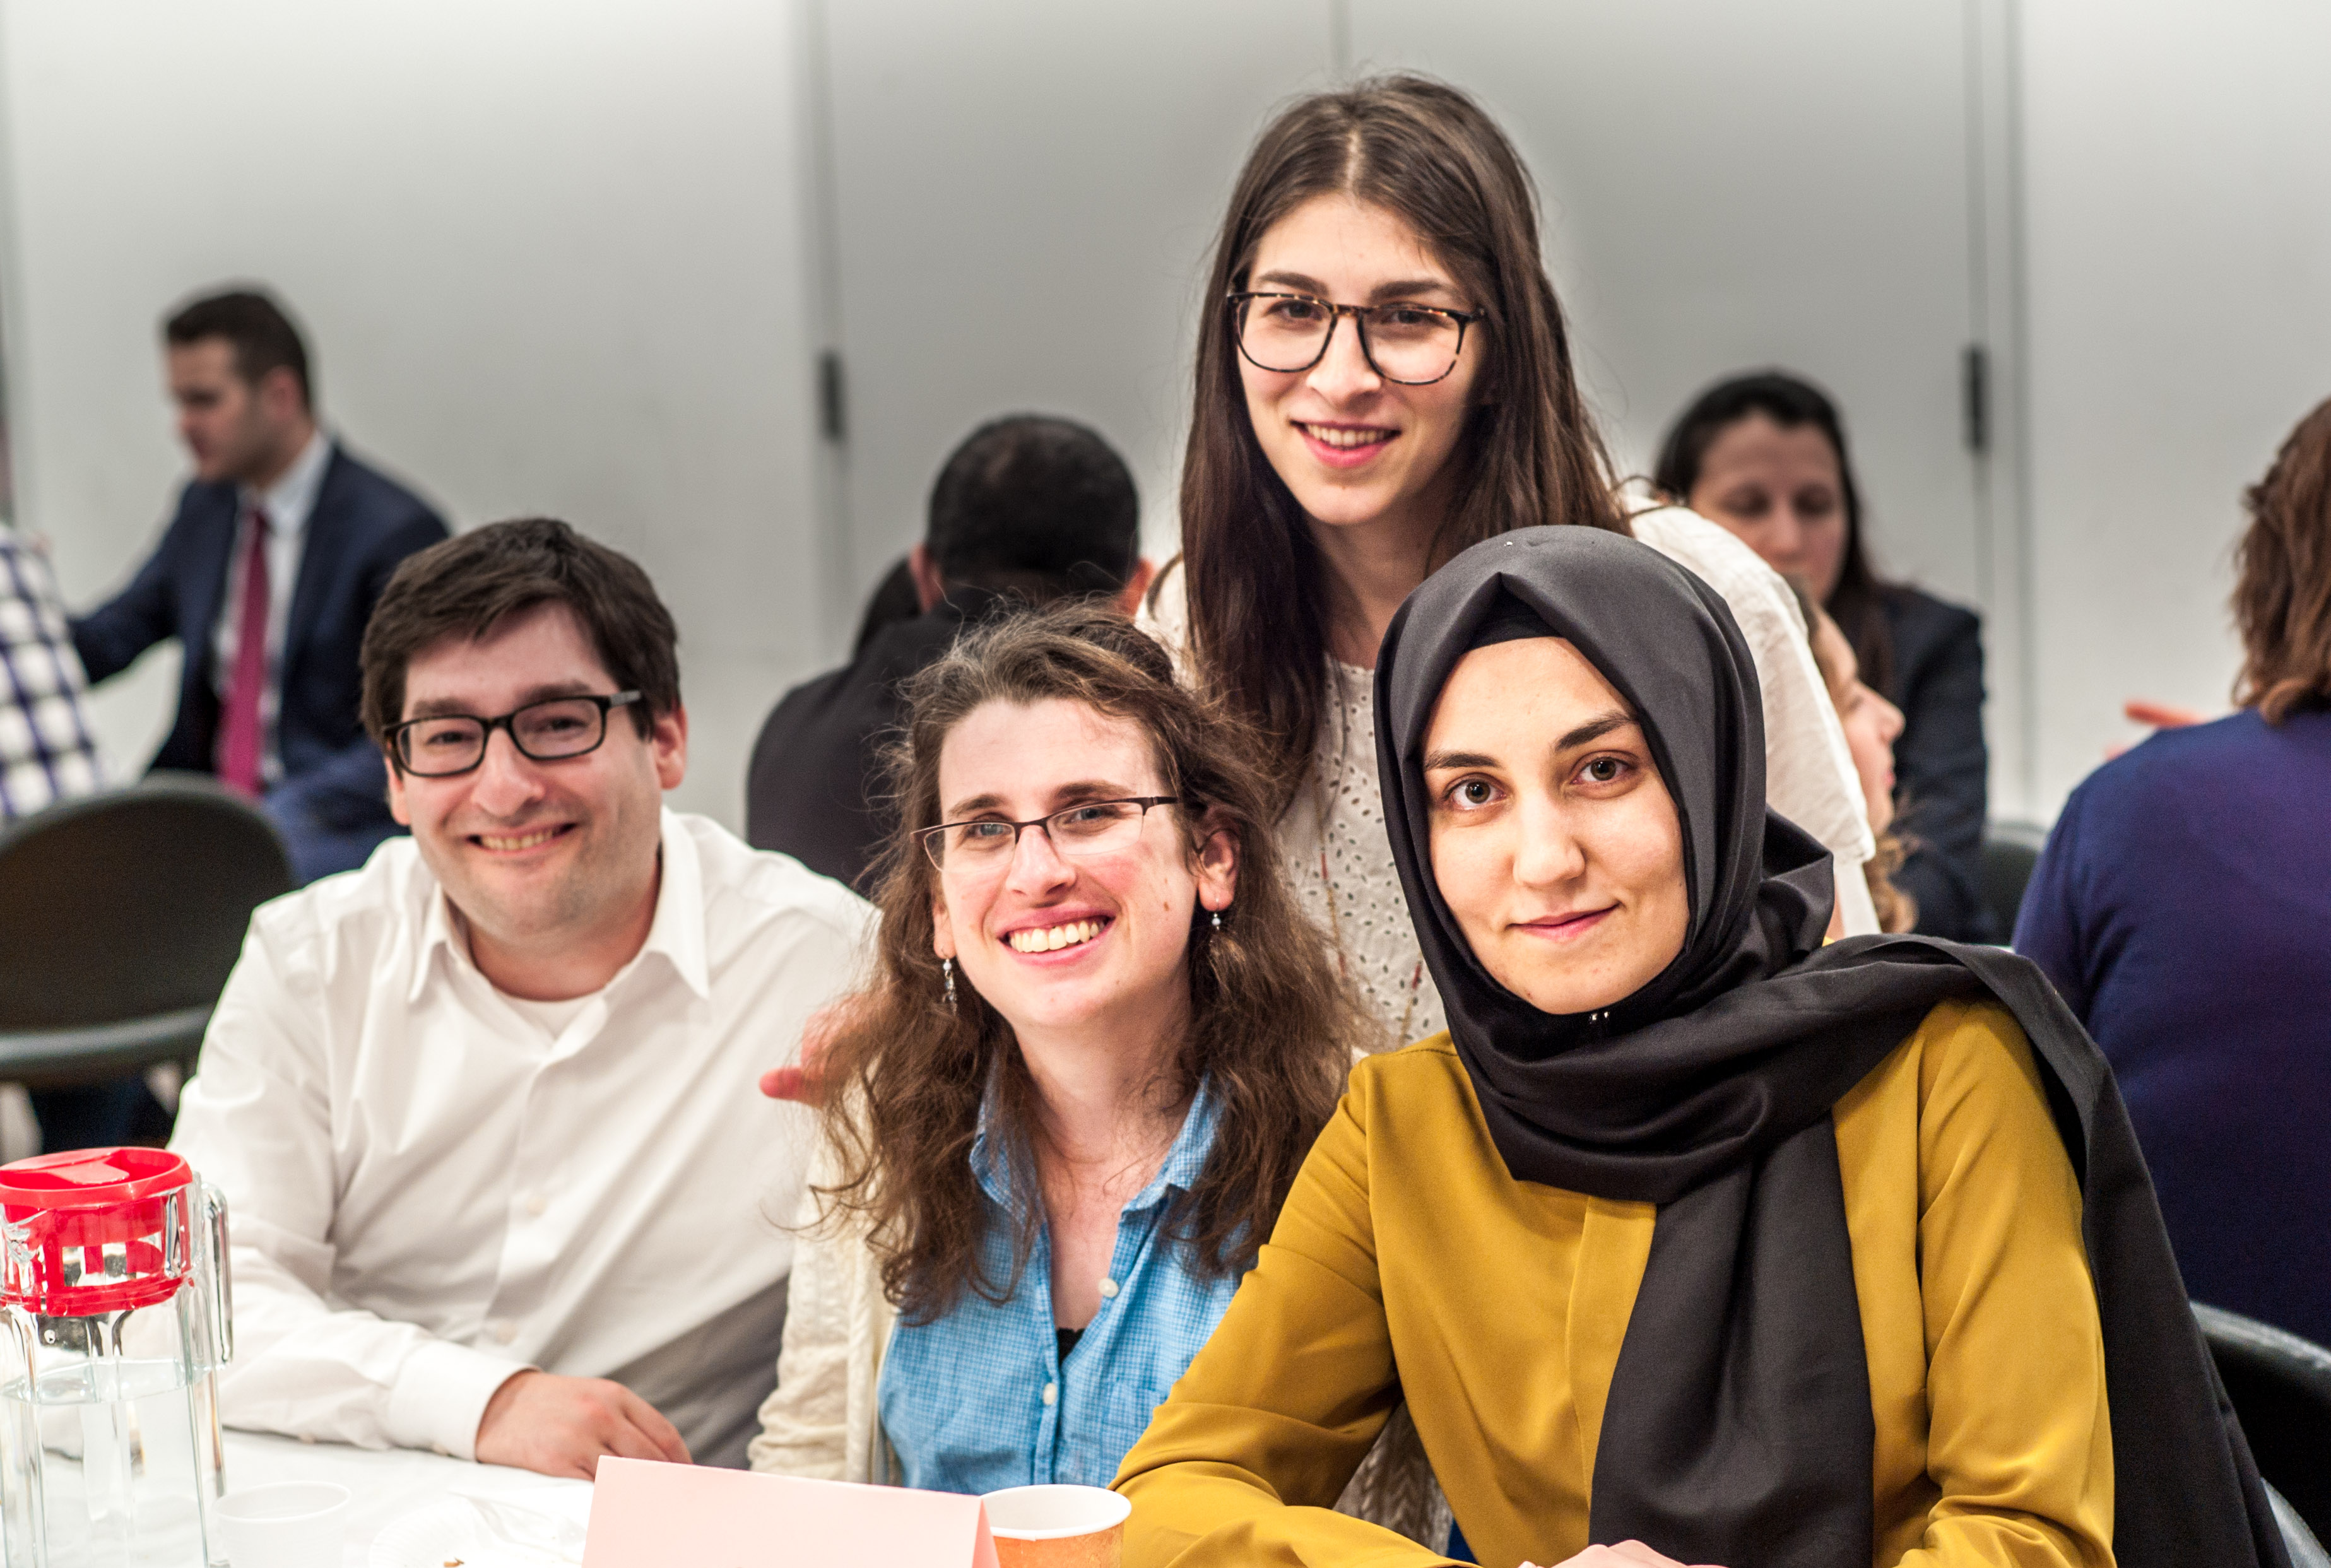 Food, fun and fellowship for all at interfaith Passover Seder in Forest Hills